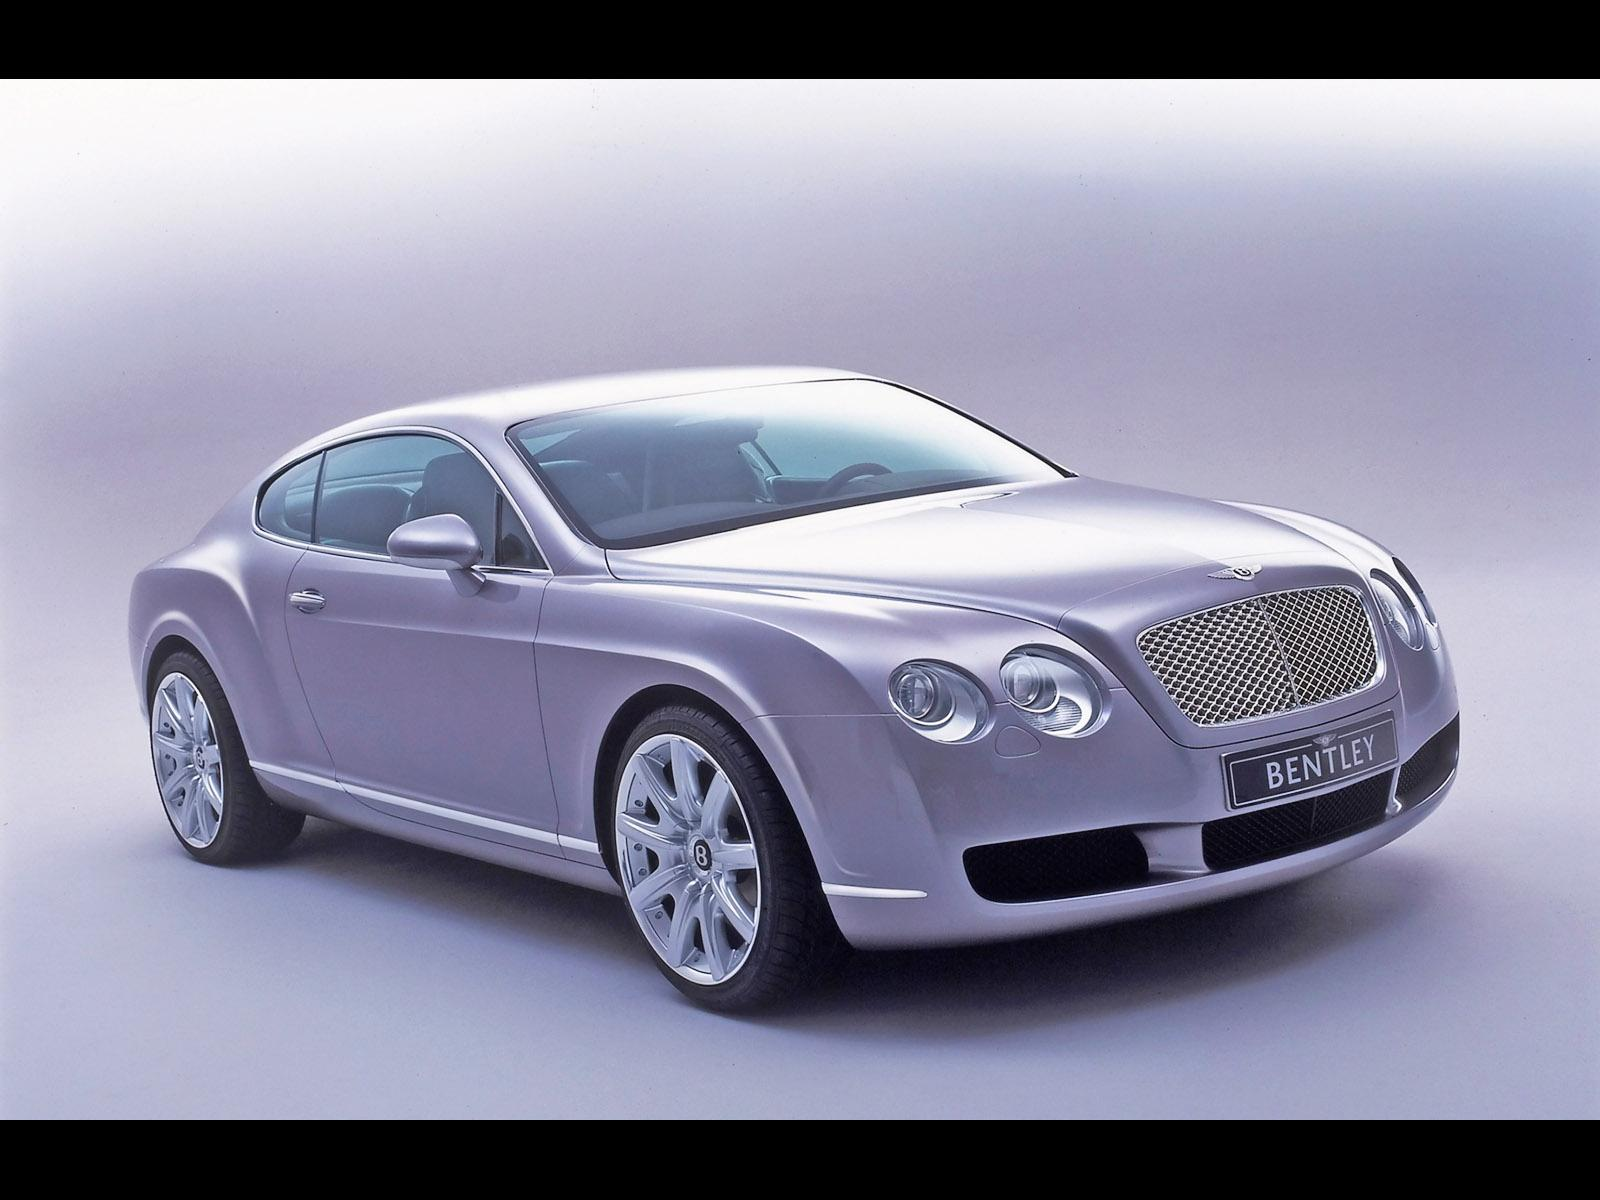 2004 bentley continental gt information and photos zombiedrive. Cars Review. Best American Auto & Cars Review